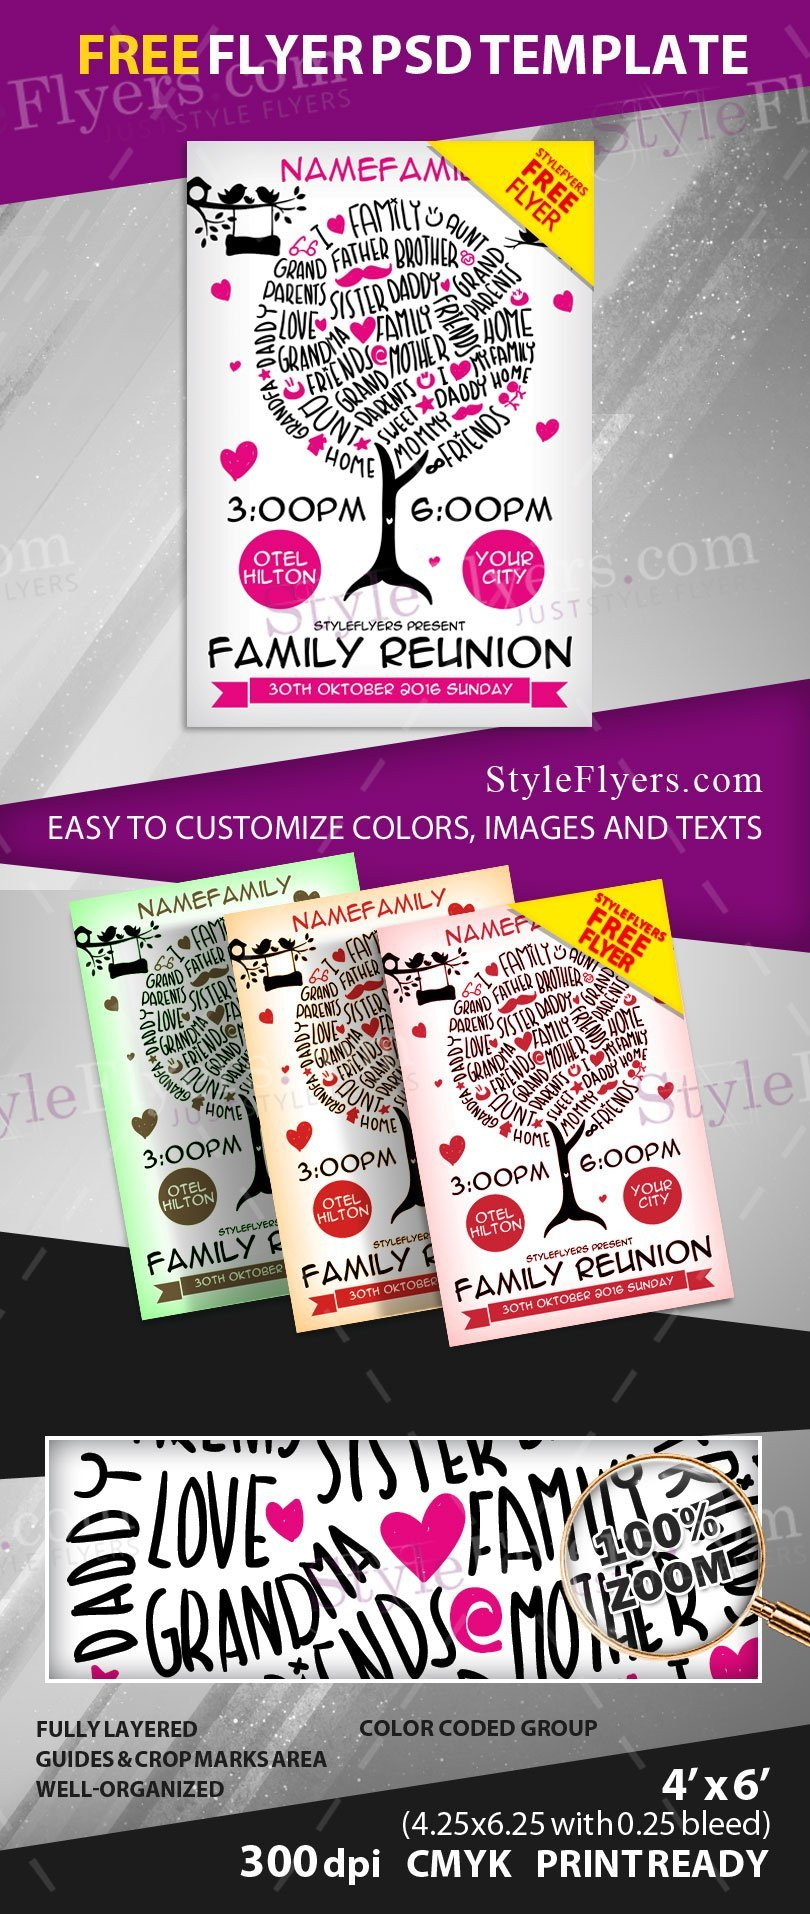 Family Reunion Flyer Templates Family Reunion Free Psd Flyer Template Free Download